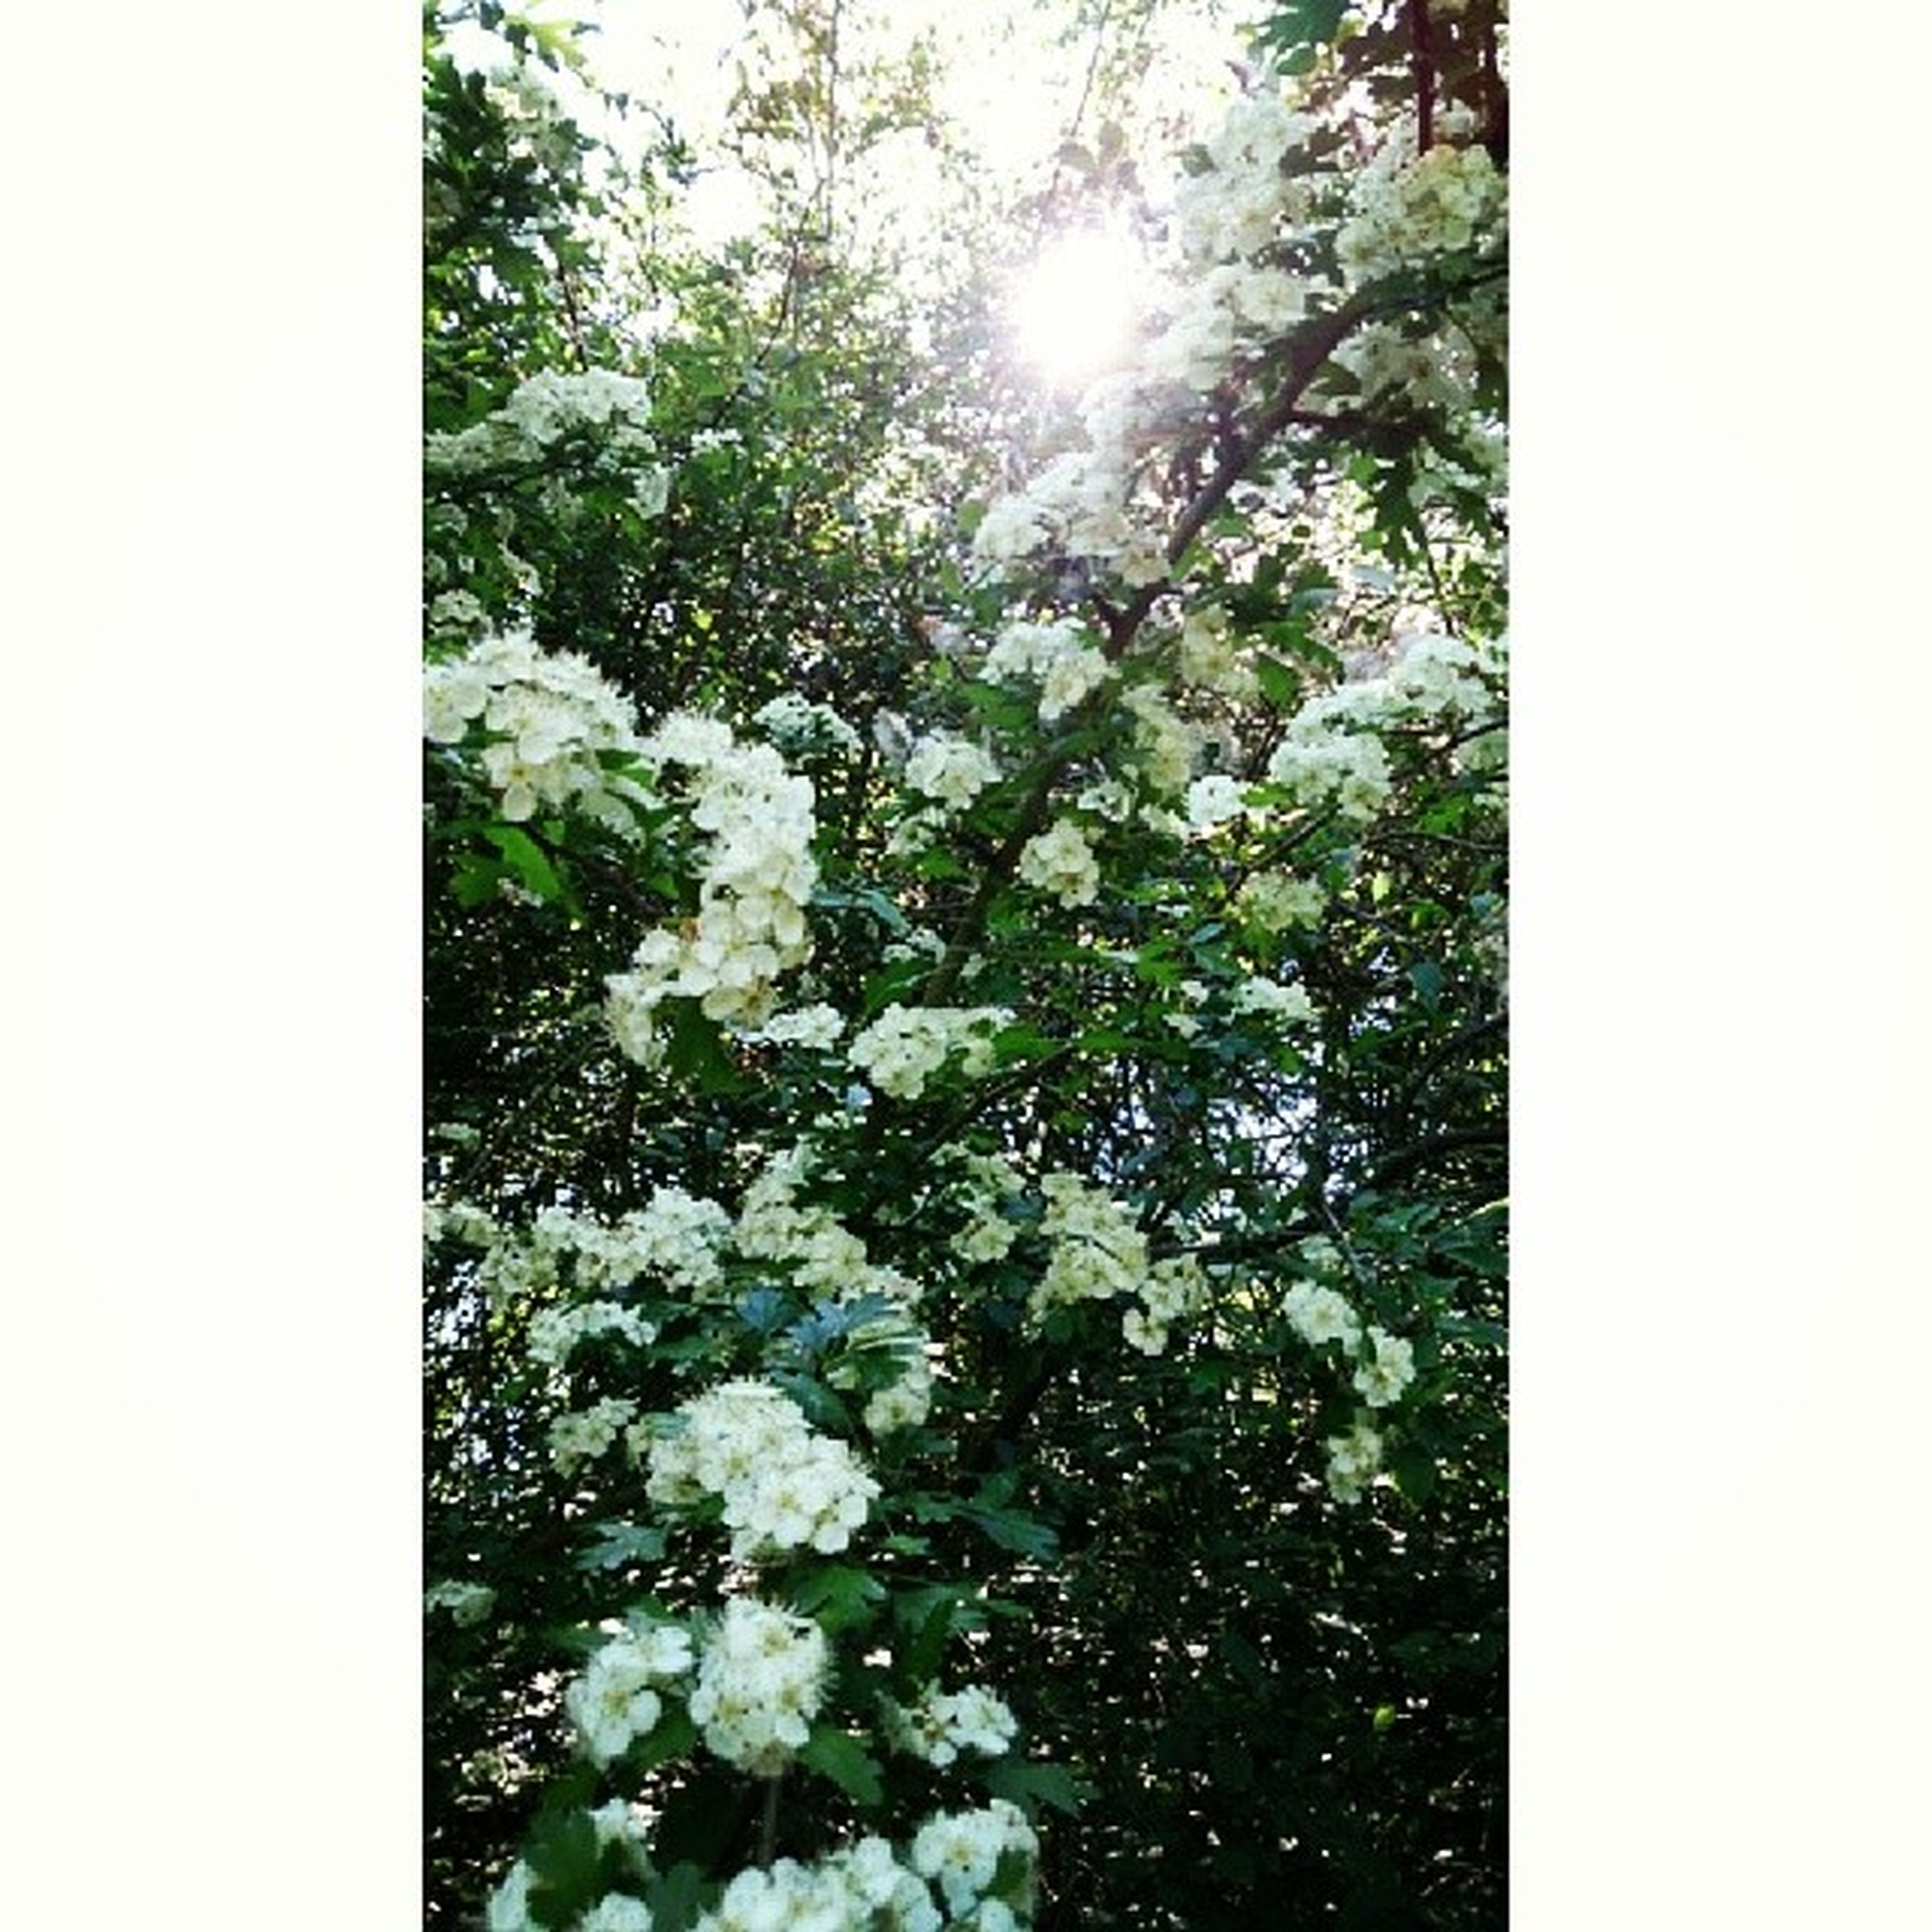 growth, beauty in nature, nature, transfer print, flower, freshness, tranquility, sunlight, tree, auto post production filter, plant, fragility, white color, sun, tranquil scene, leaf, day, no people, scenics, outdoors